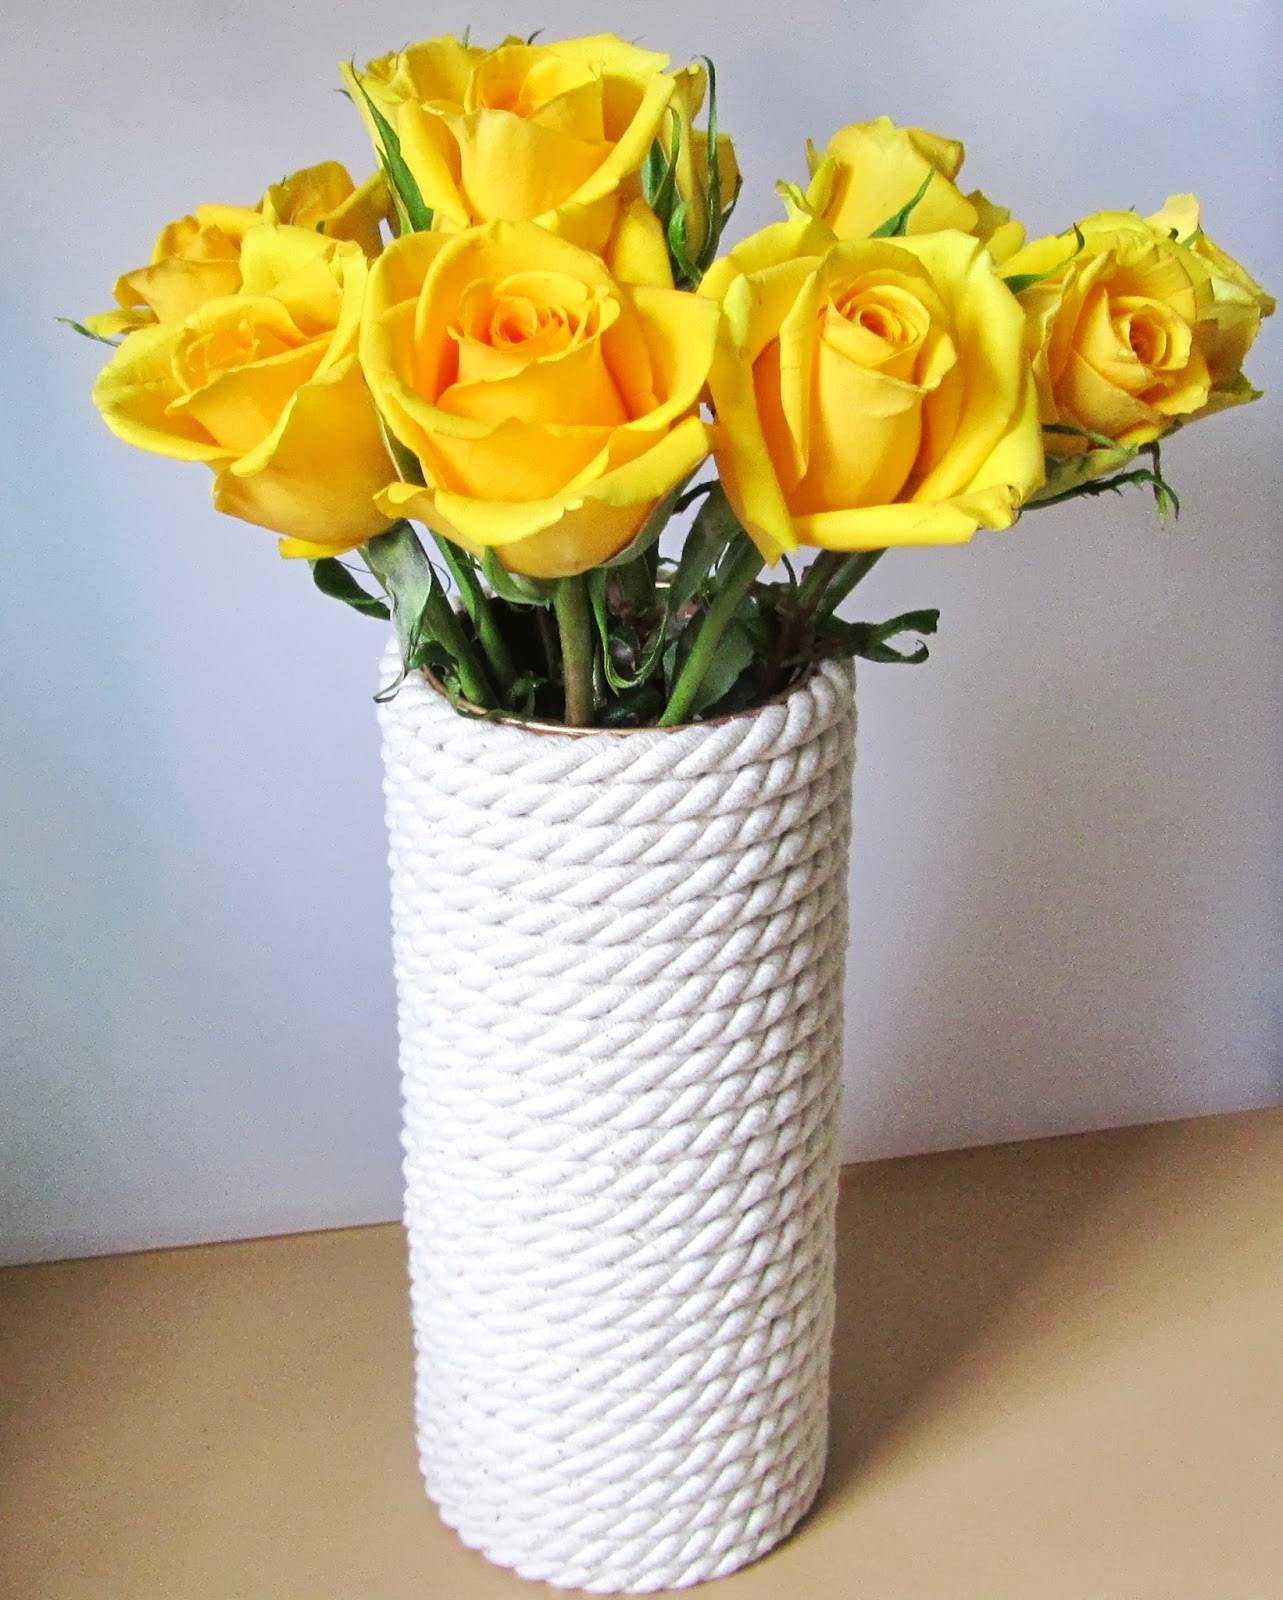 most expensive vase of nautical wedding centerpiece ideas lovely nautical centerpieceh in nautical wedding centerpiece ideas lovely nautical centerpieceh vases vase savei 0d for flowers uk filler